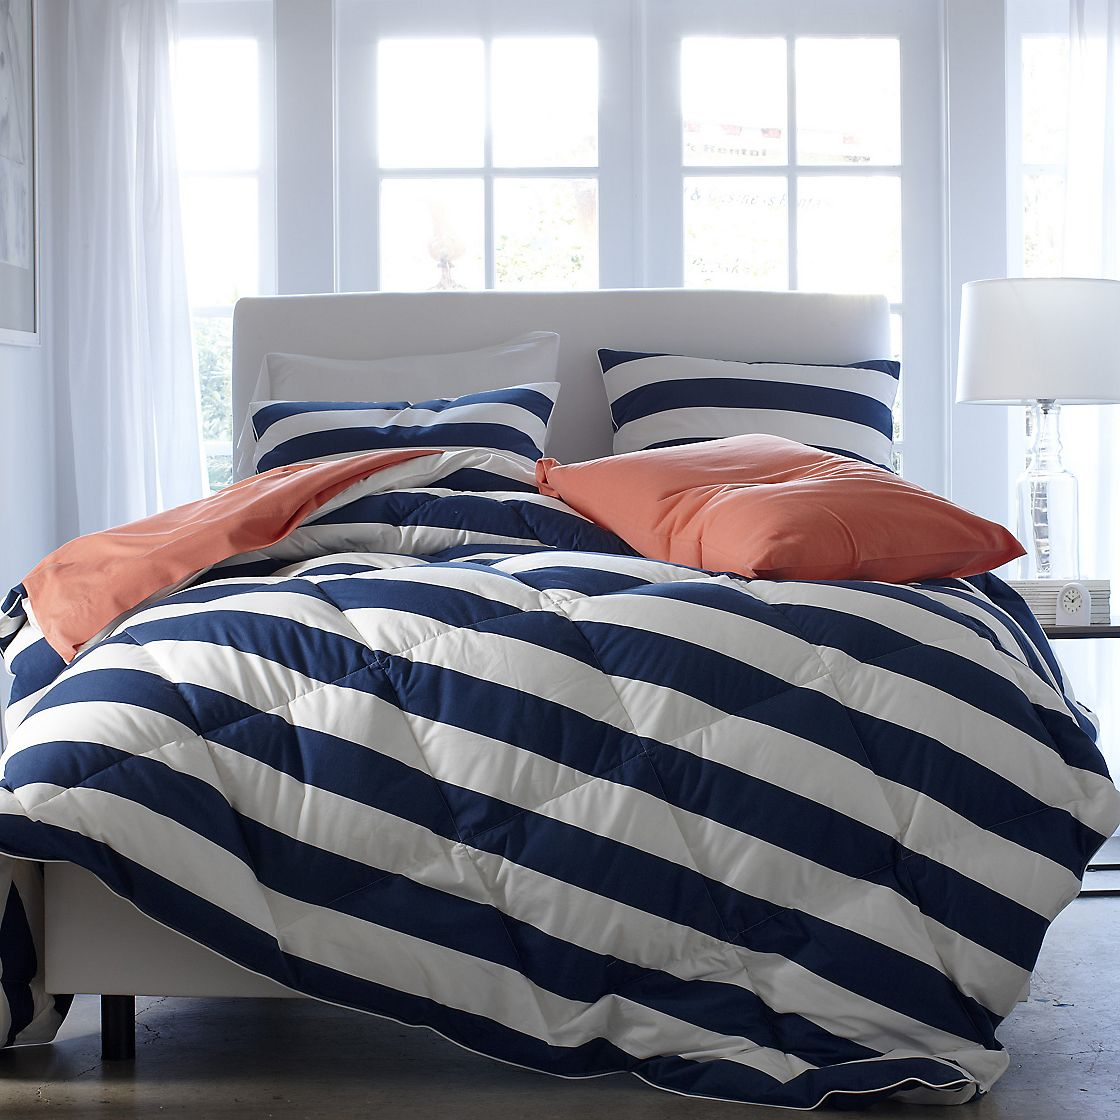 Image of: Navy Striped Blue and White Bedding